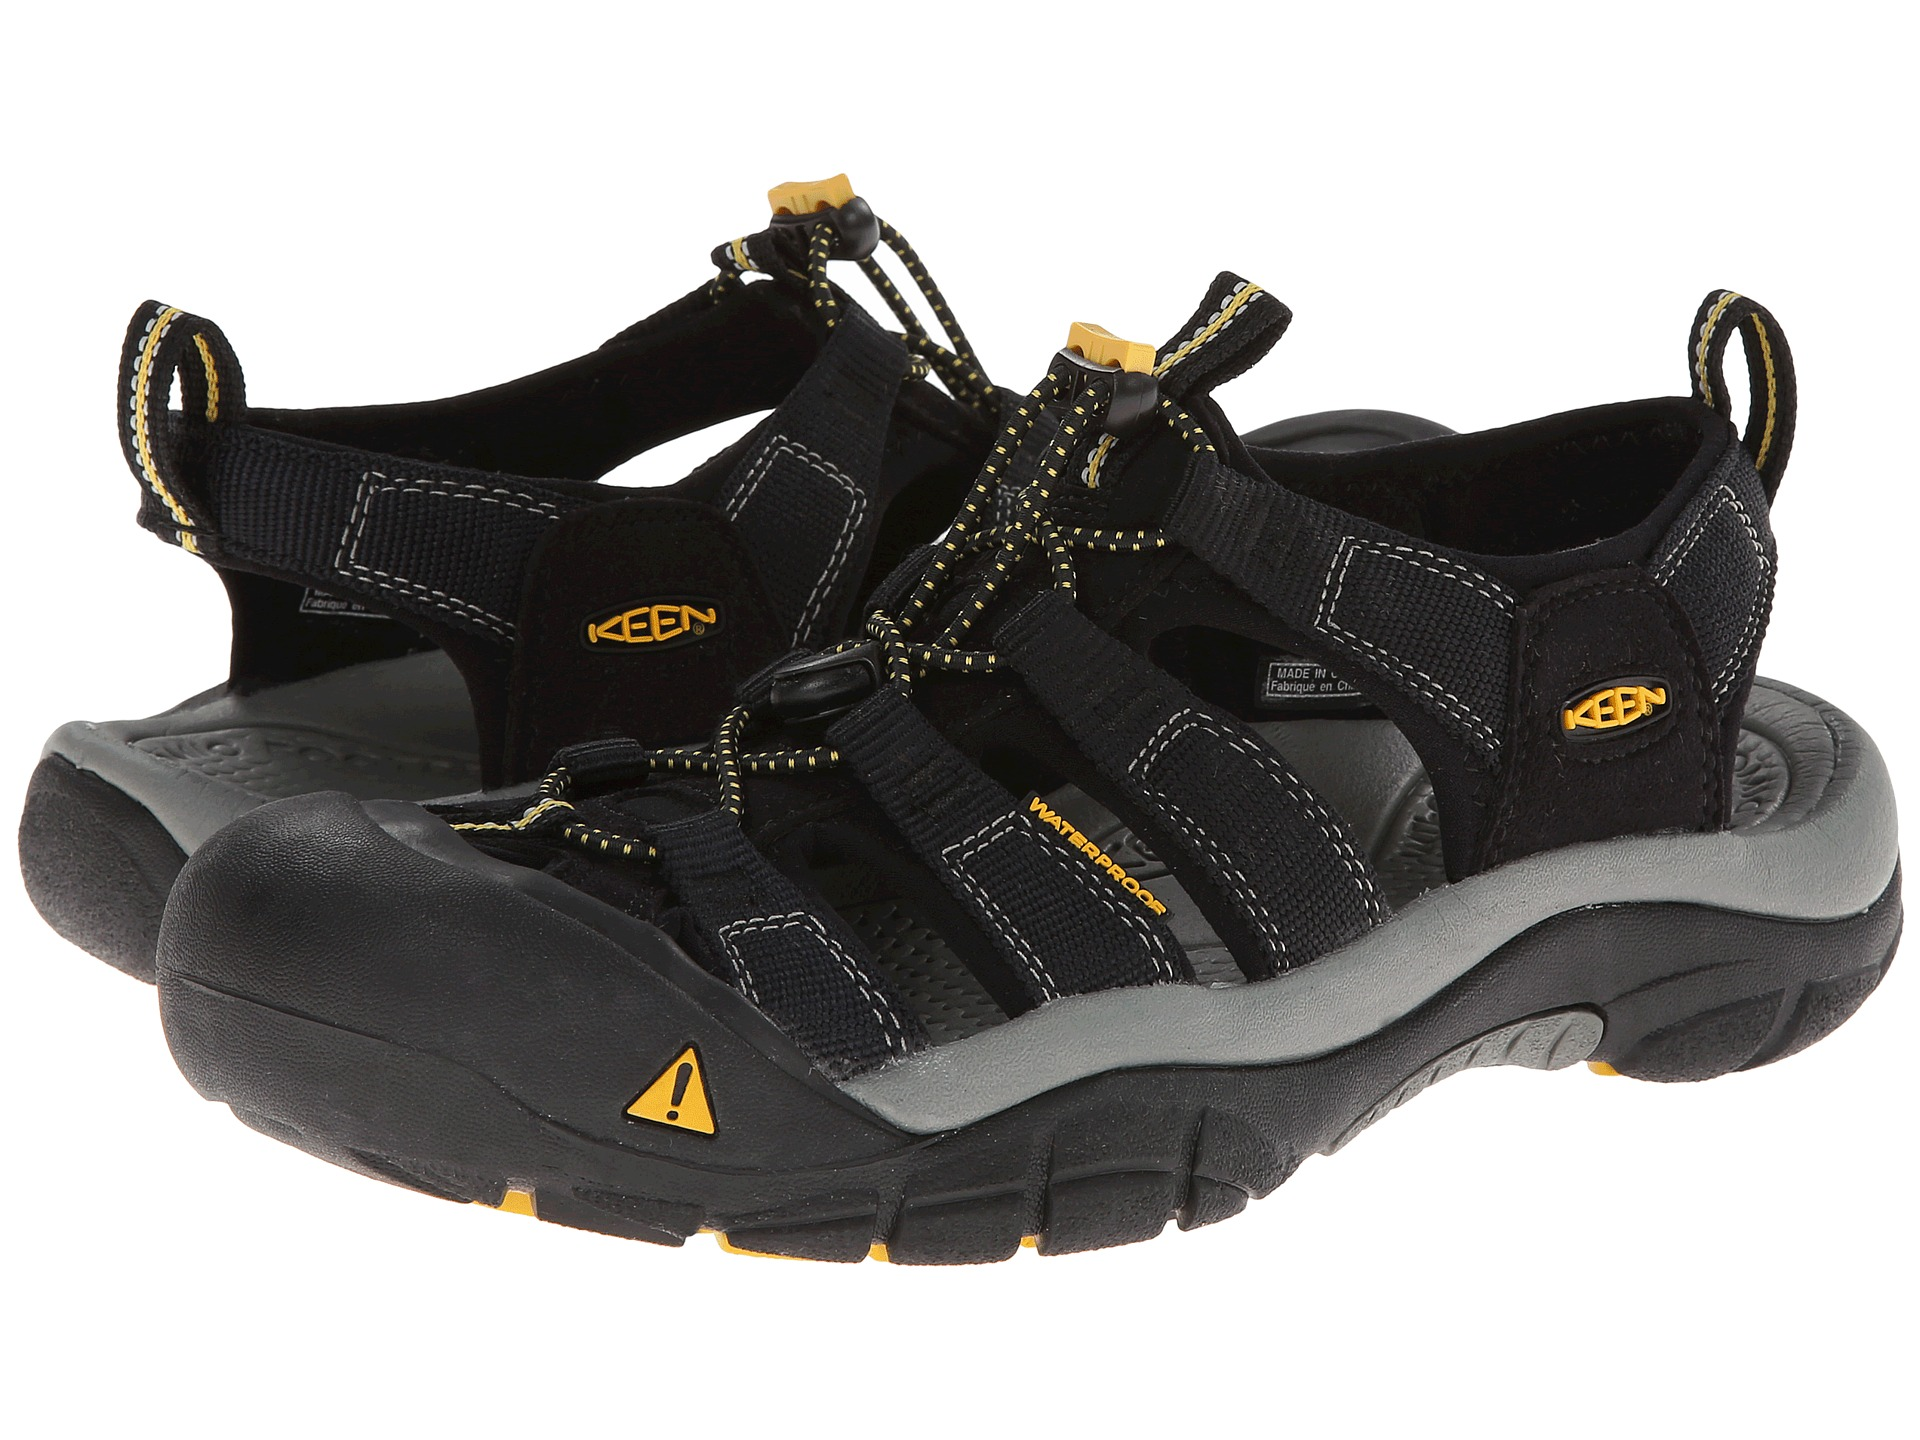 Keen Mens Shoes Canada